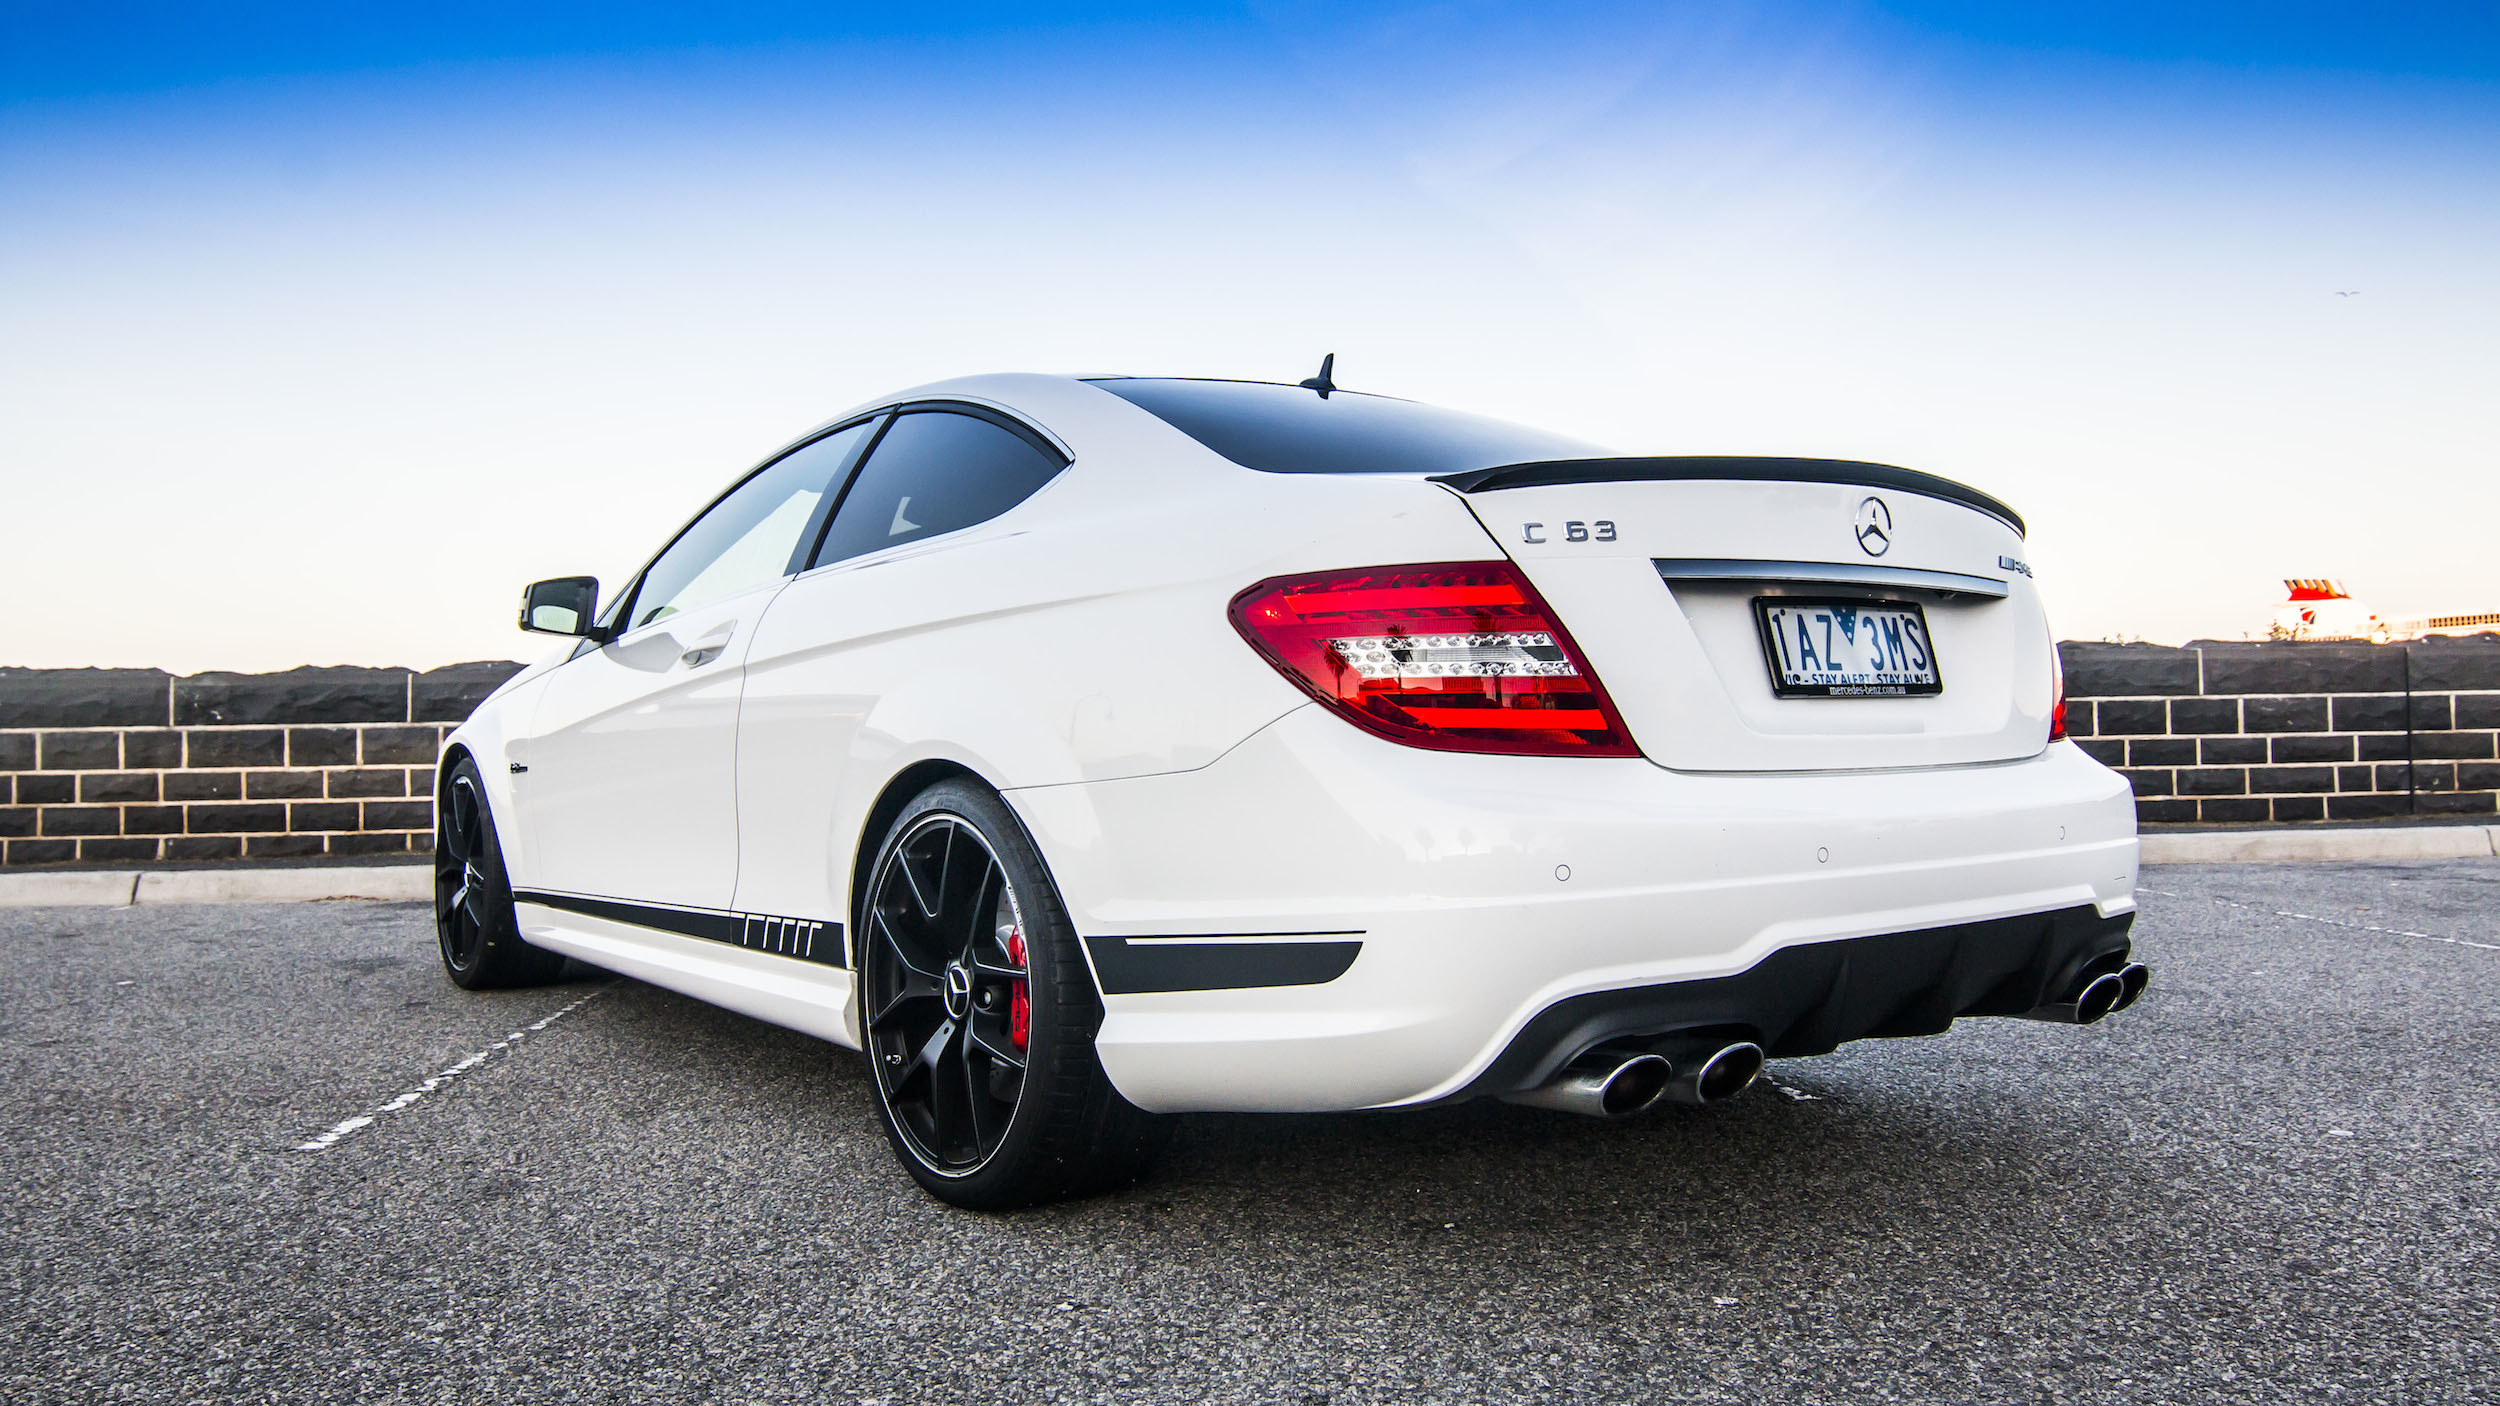 Bmw m4 v mercedes benz c63 amg edition 507 comparison for Bmw mercedes benz